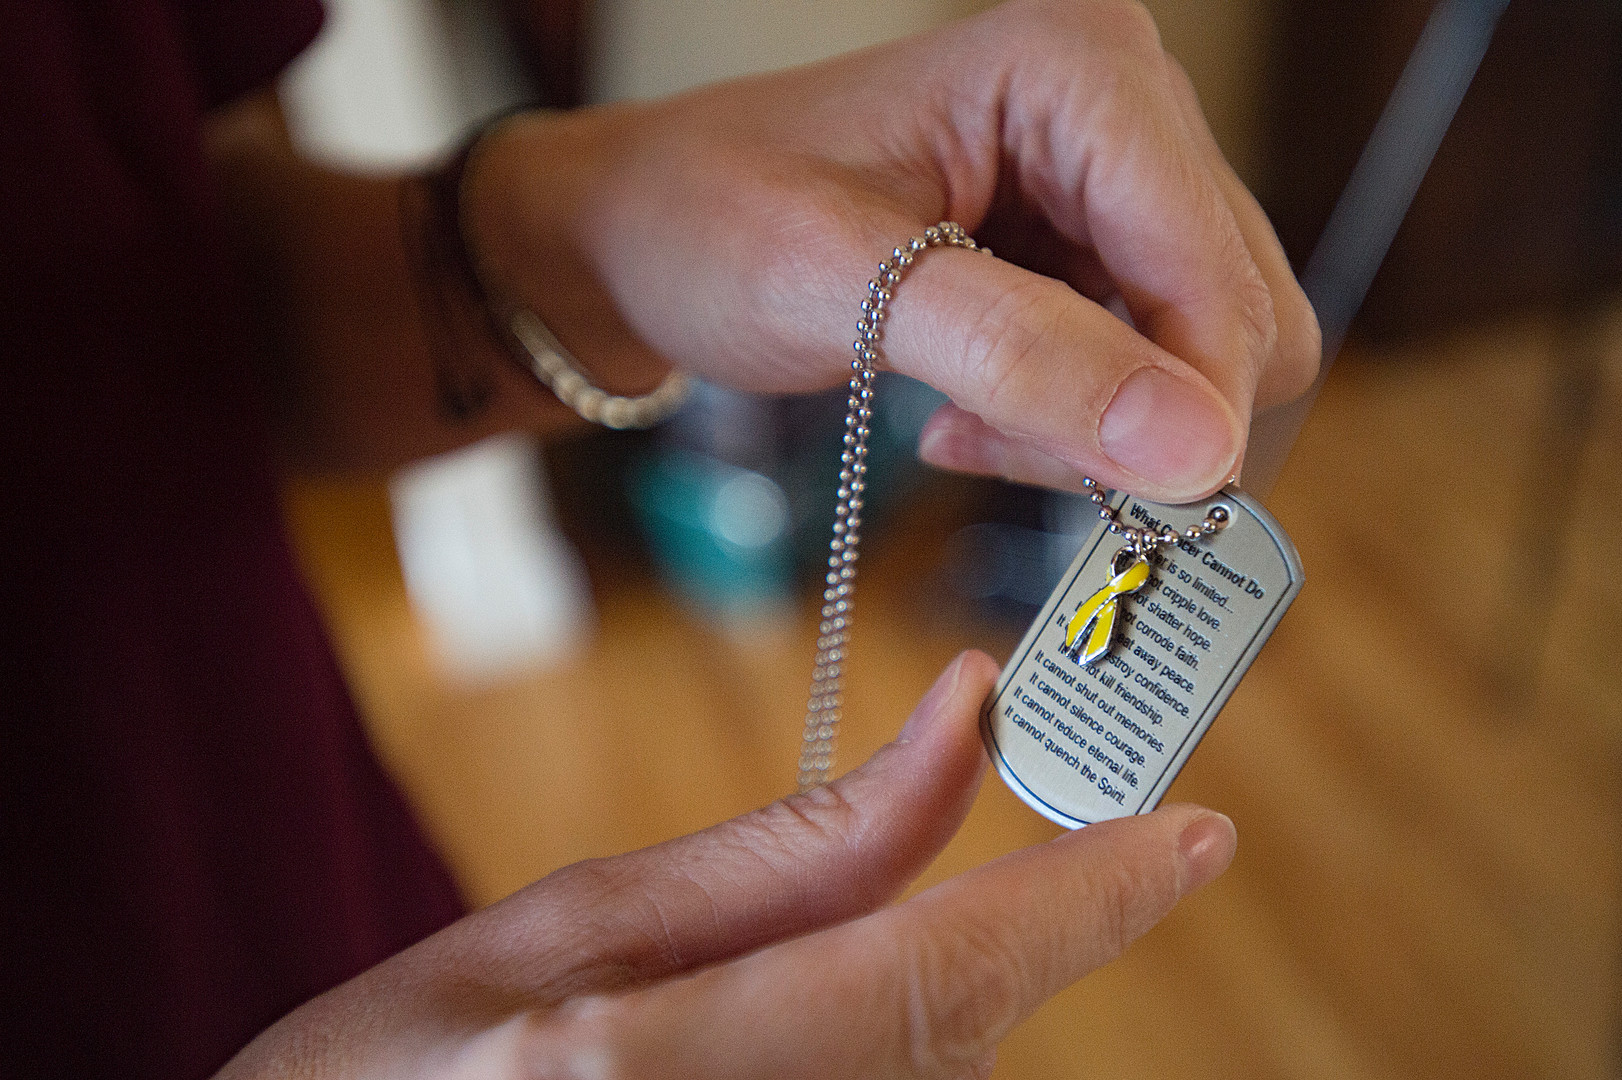 Michelle Edgerley shows off her dog tag with a ribbon symbolizing the fight against childhood cancer at her home in Fort Collins on Tuesday, January 8, 2019. The Edgerley family has been wearing the tags with positive messages on fighting cancer inscribed on them for their son, Carter. AUSTIN HUMPHREYS/THE COLORADOAN